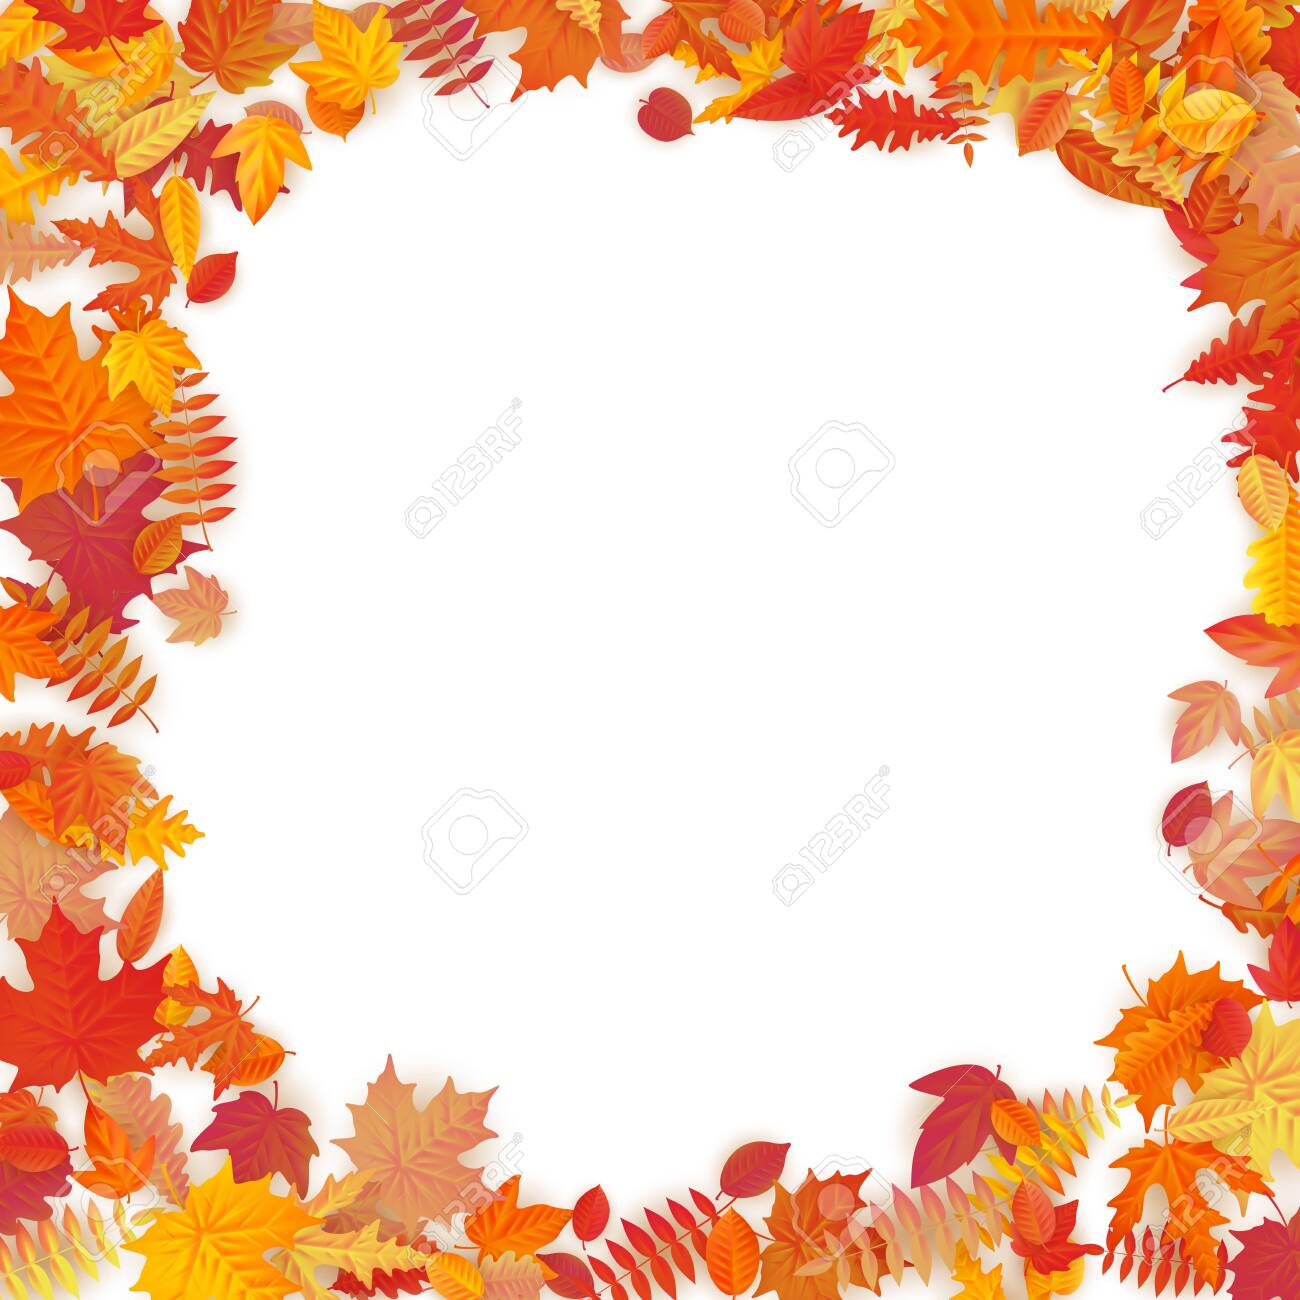 Frame with red, orange, brown and yellow falling autumn leaves. EPS 10 vector file - 143700725